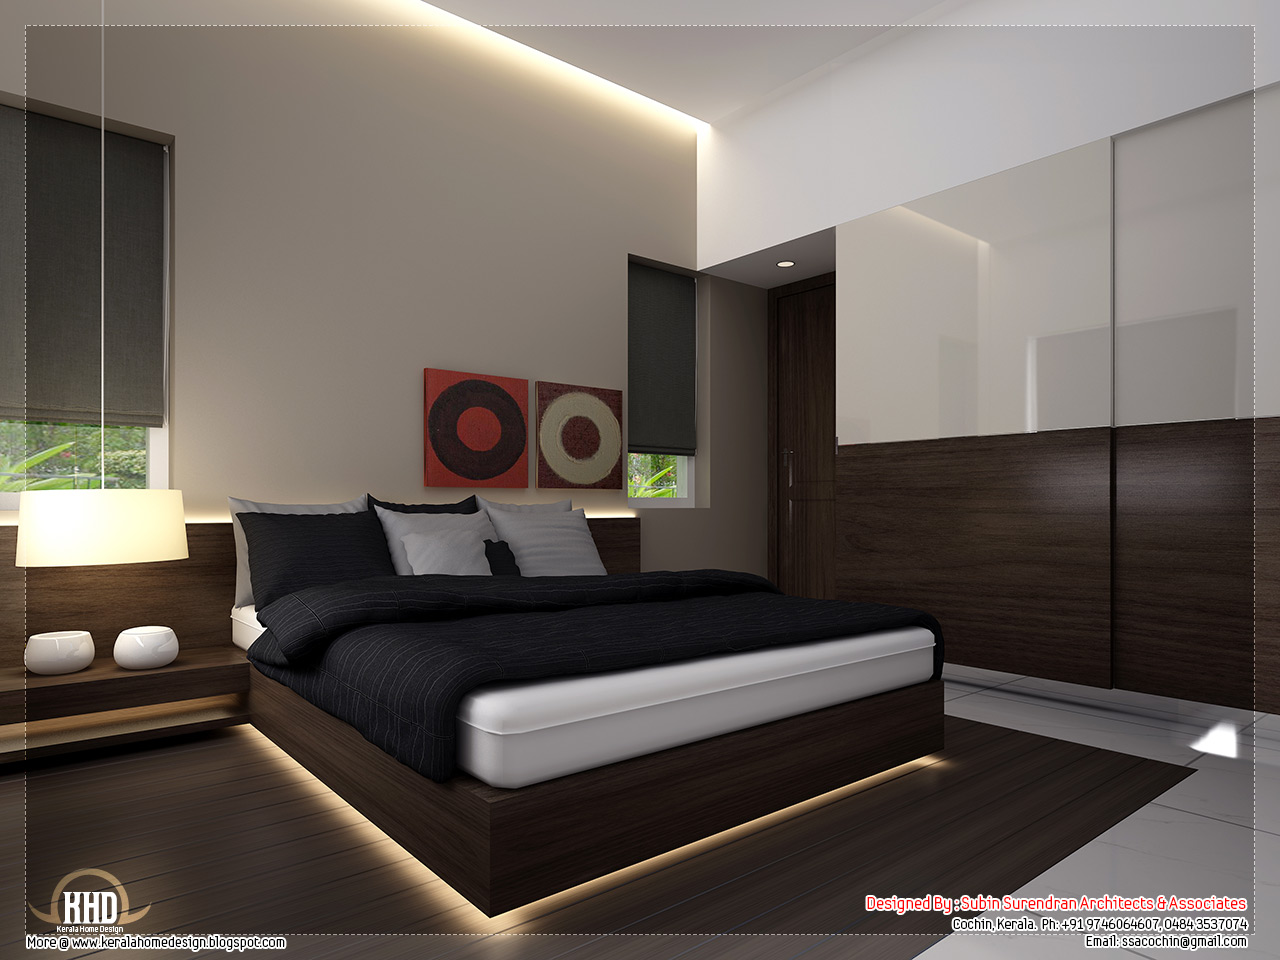 Beautiful home interior designs kerala homes Beautiful interior home designs